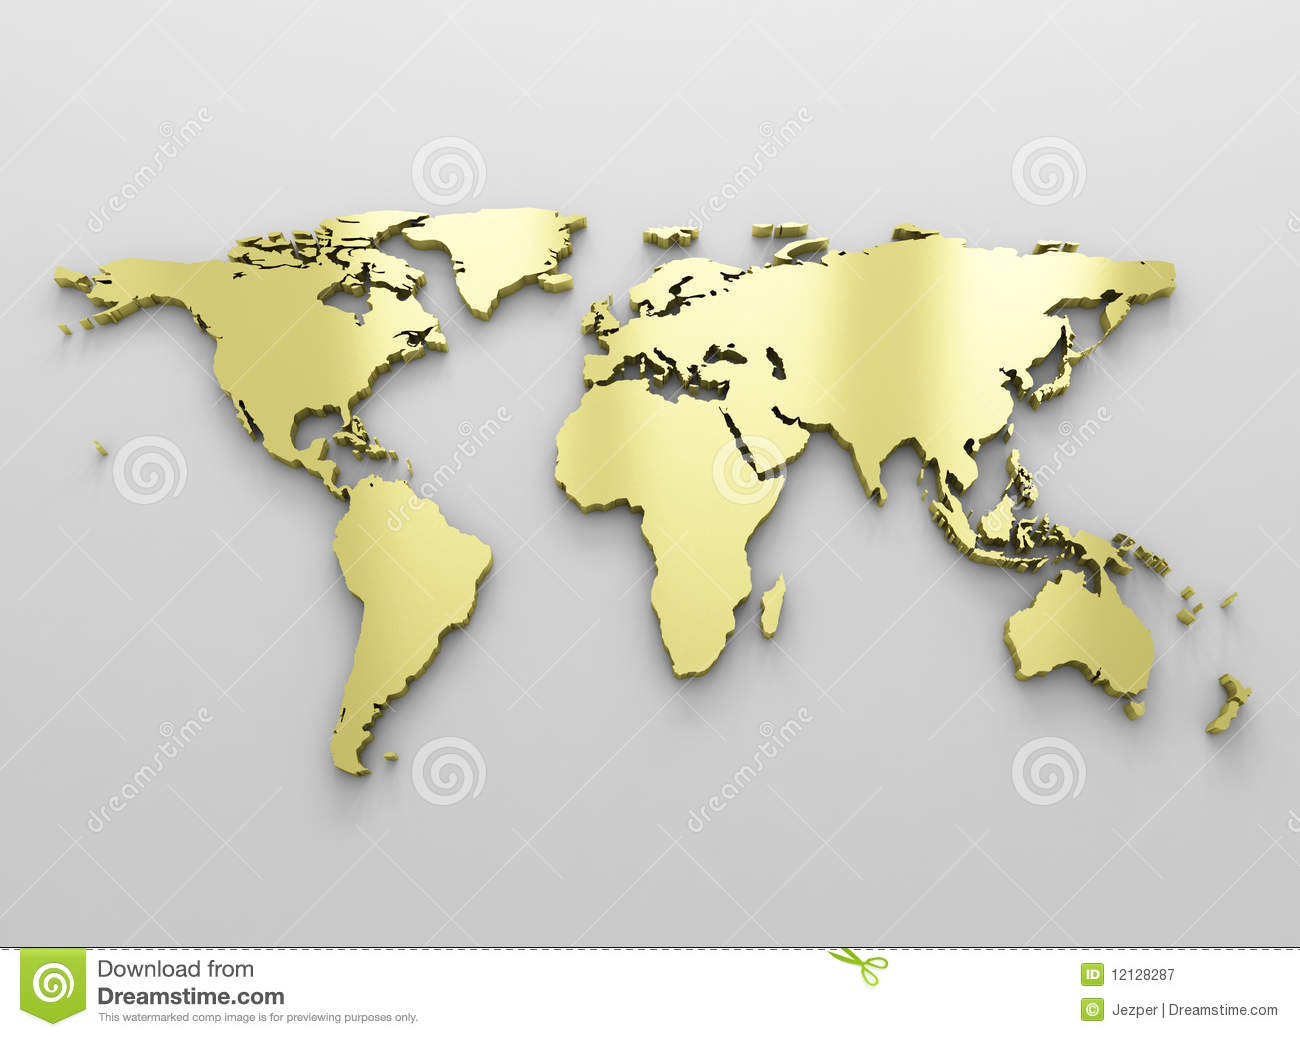 World map stock illustration illustration of geography 12128287 world map gumiabroncs Choice Image